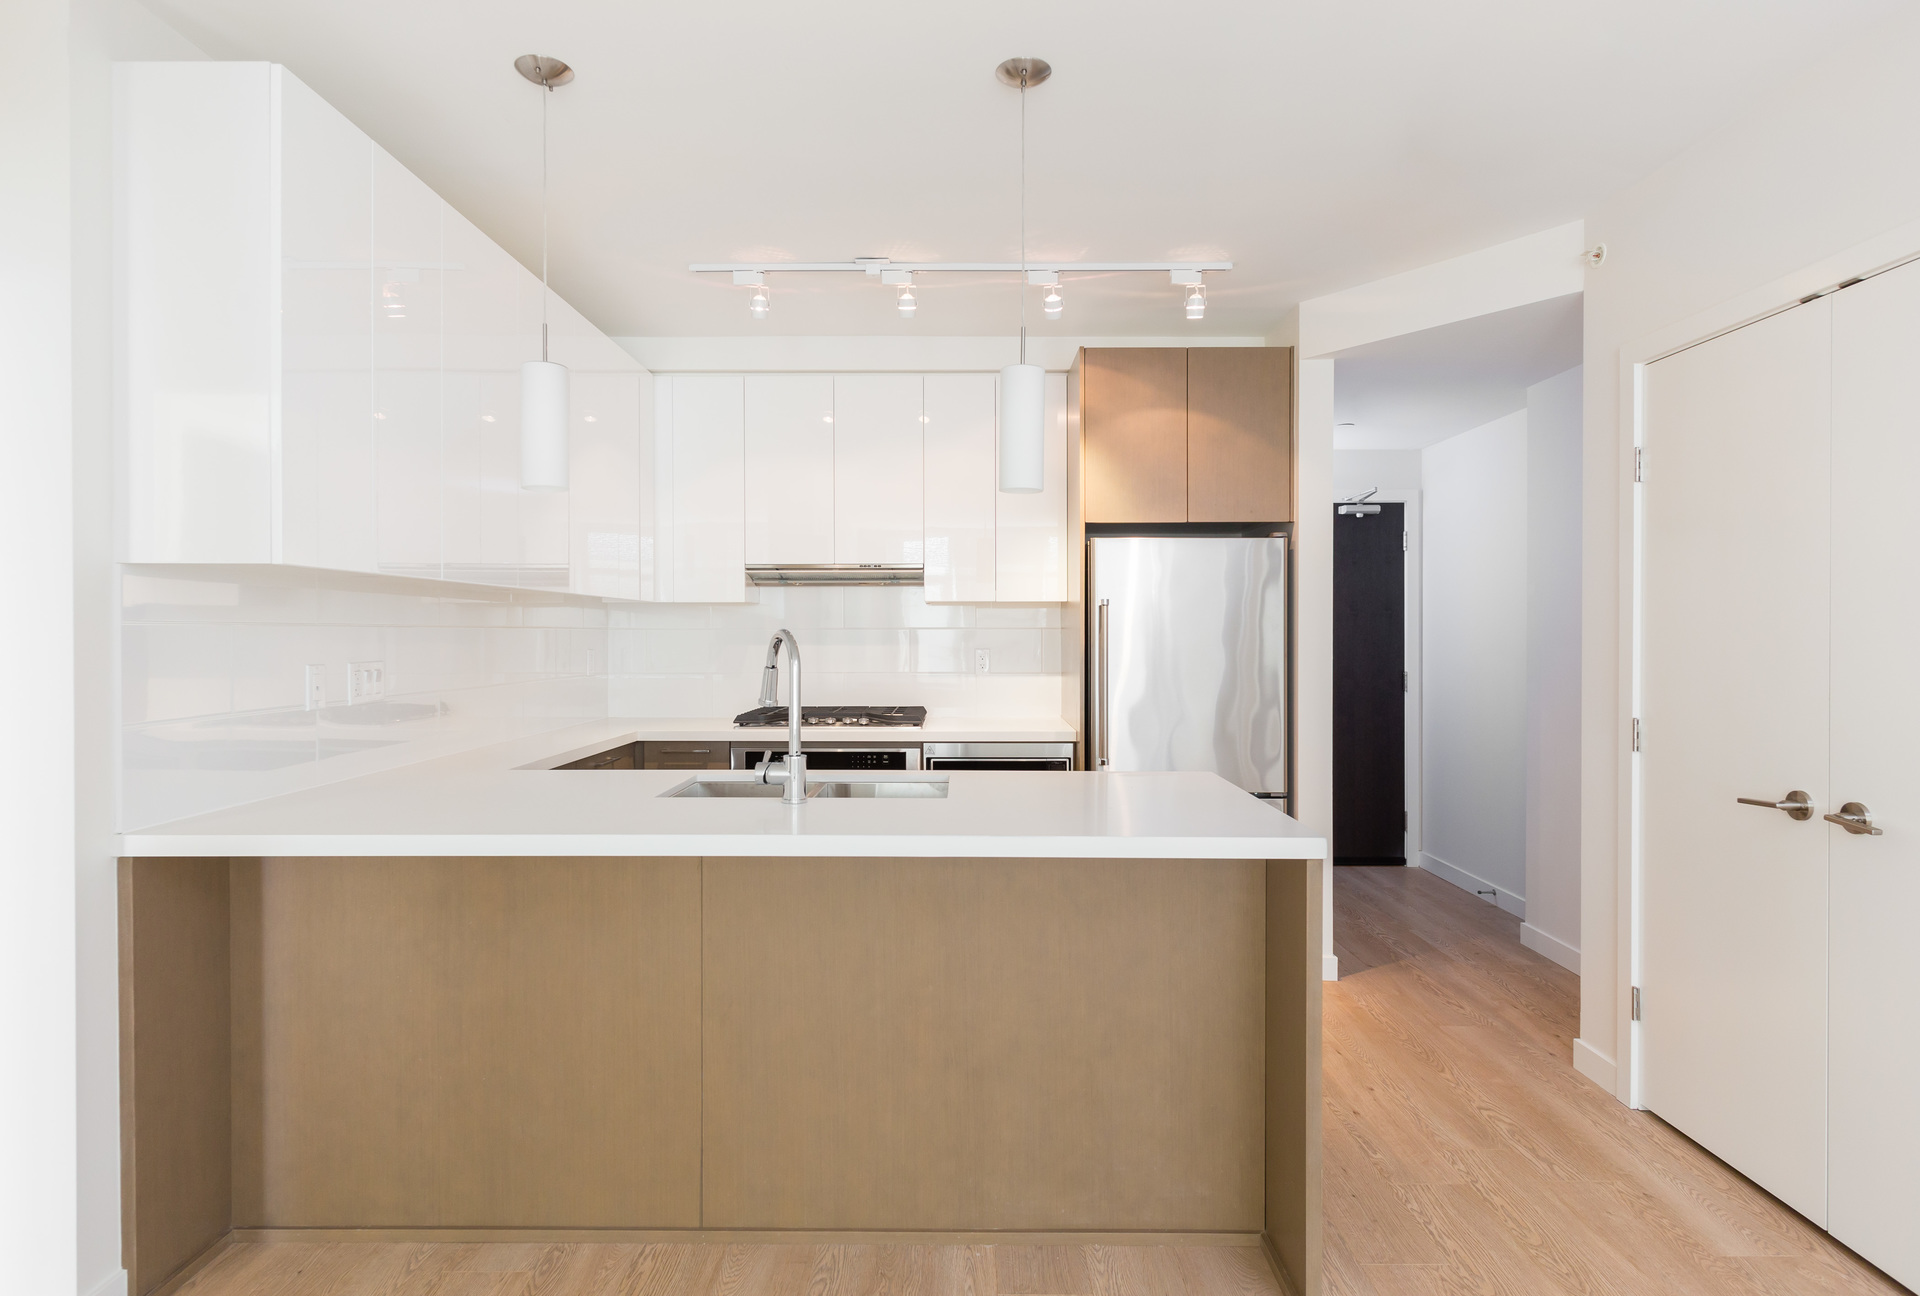 Kitchen  at 2205 - 3080 Lincoln, North Coquitlam, Coquitlam